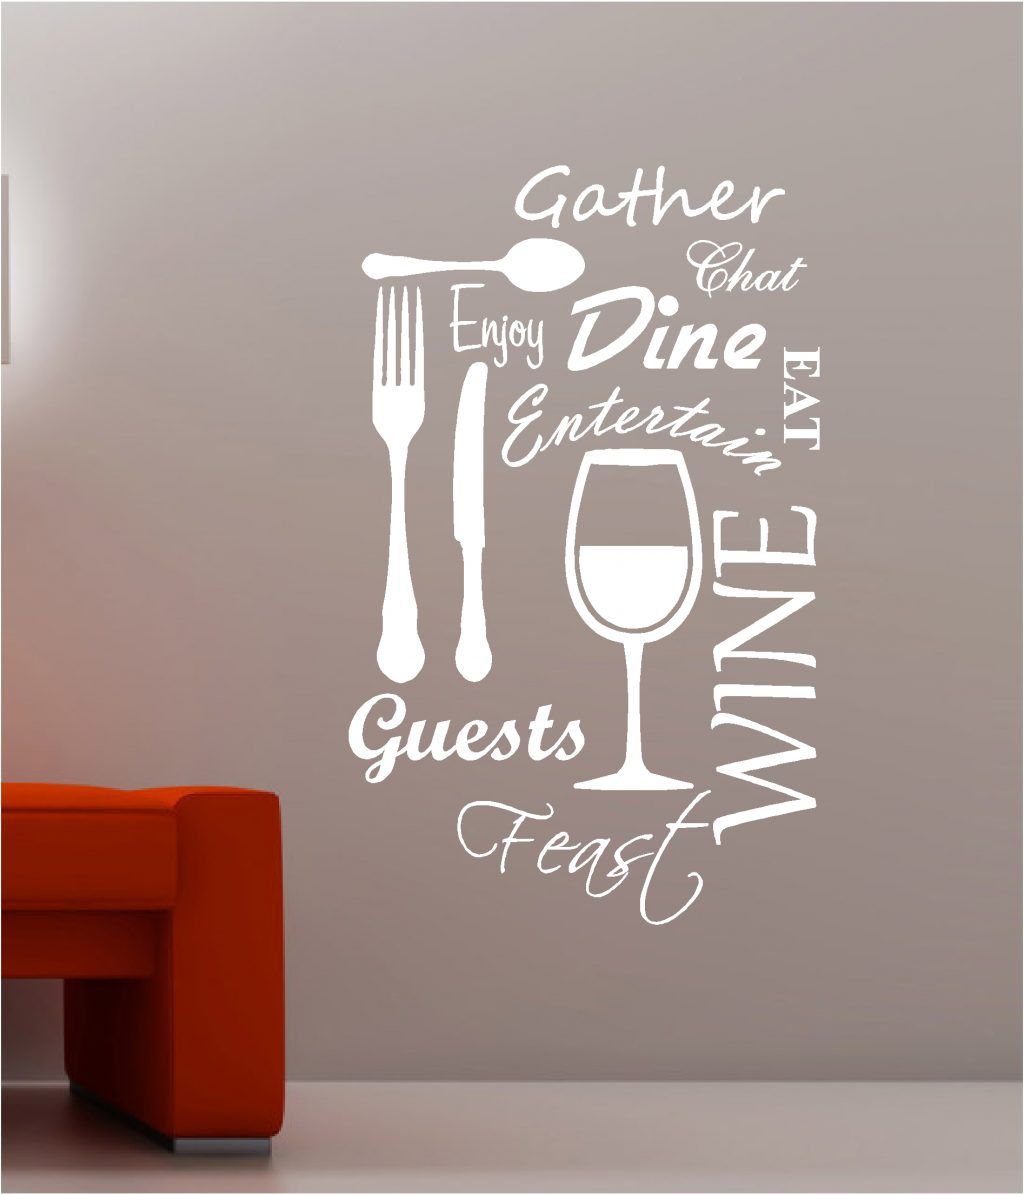 patio-outdoor-areas-1024x1195 Vinyl Stickers for Outdoor Places